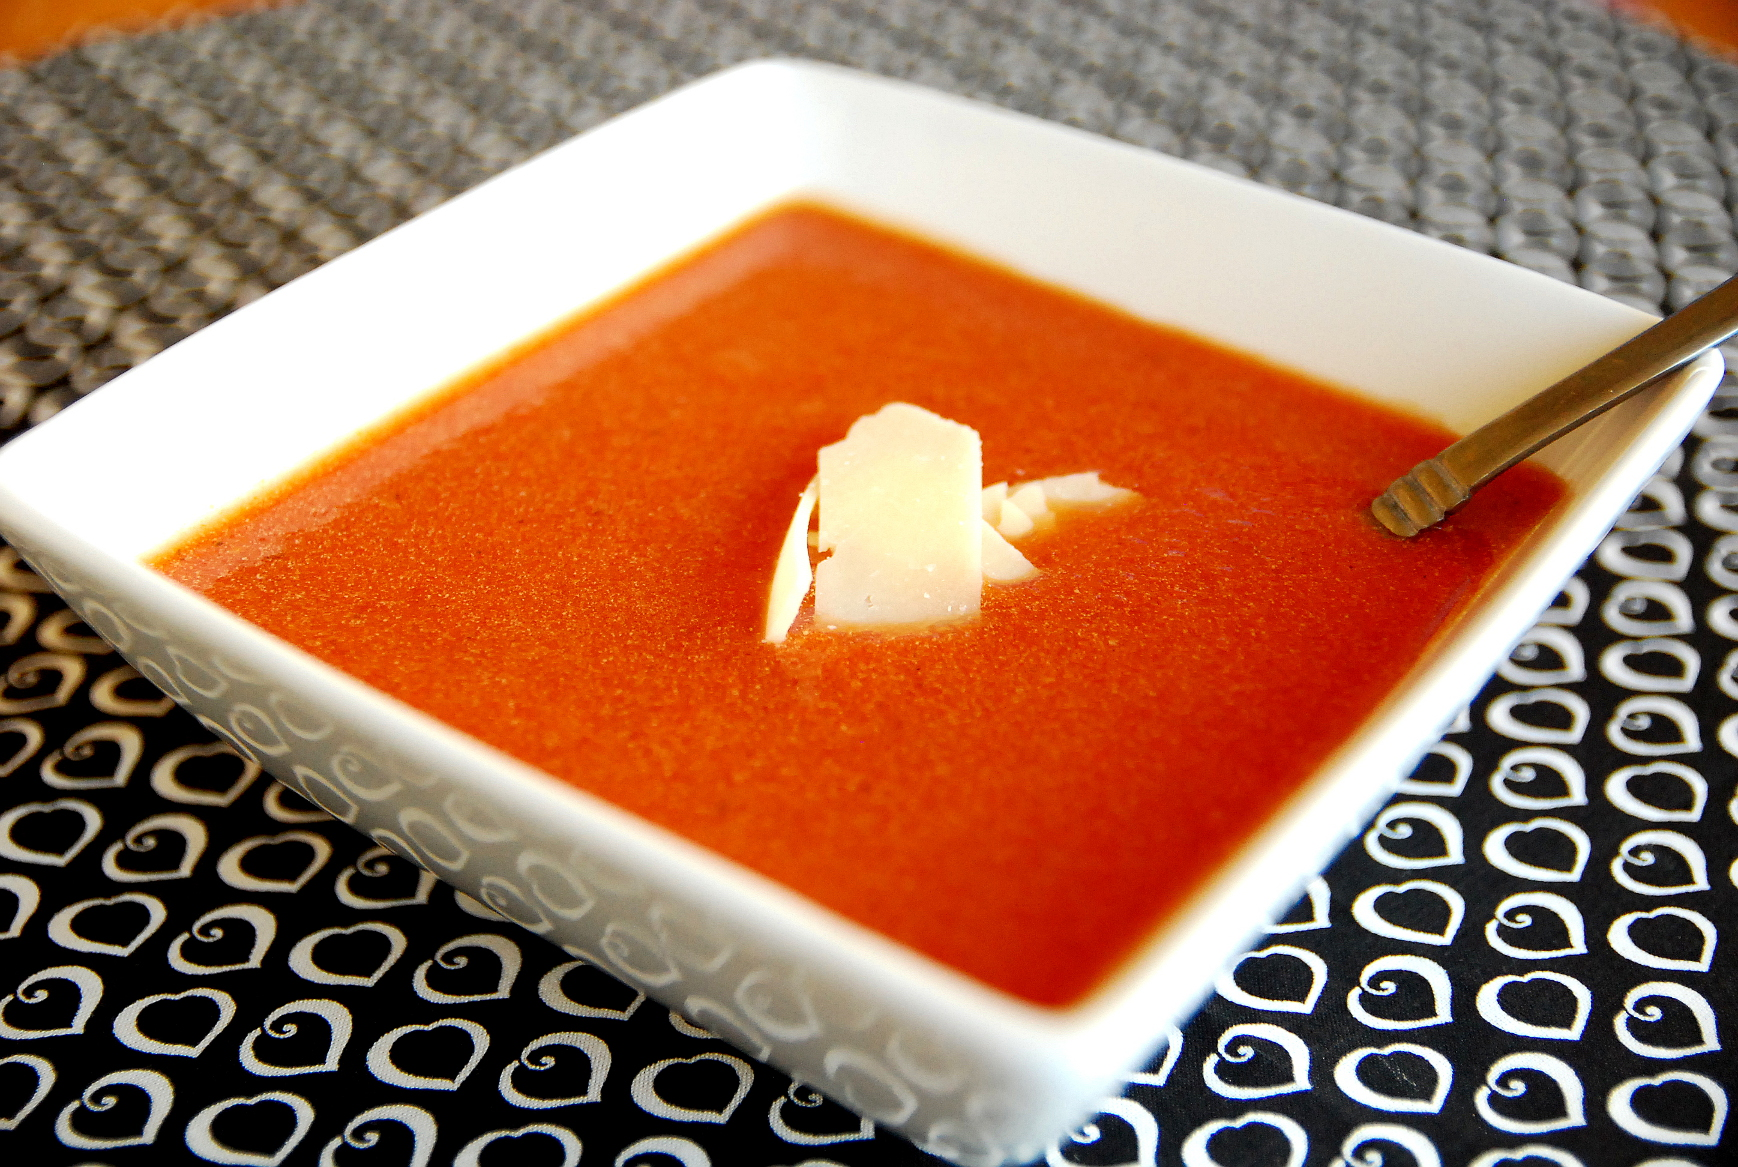 Nordstroms slow cooker tomato basil soup 1_small